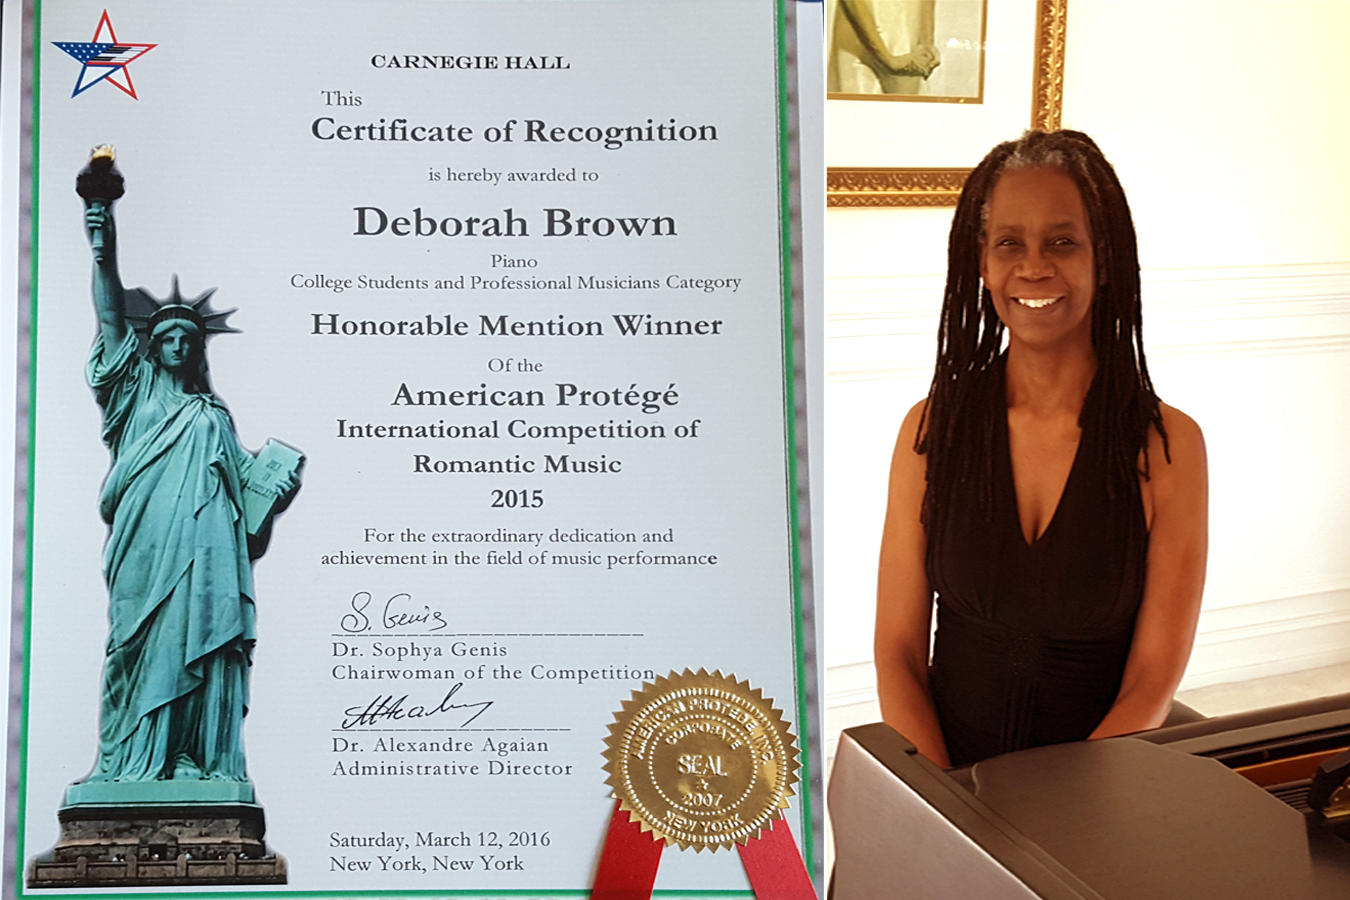 Deborah Brown Carnegie Hall Certificate 4 4 16